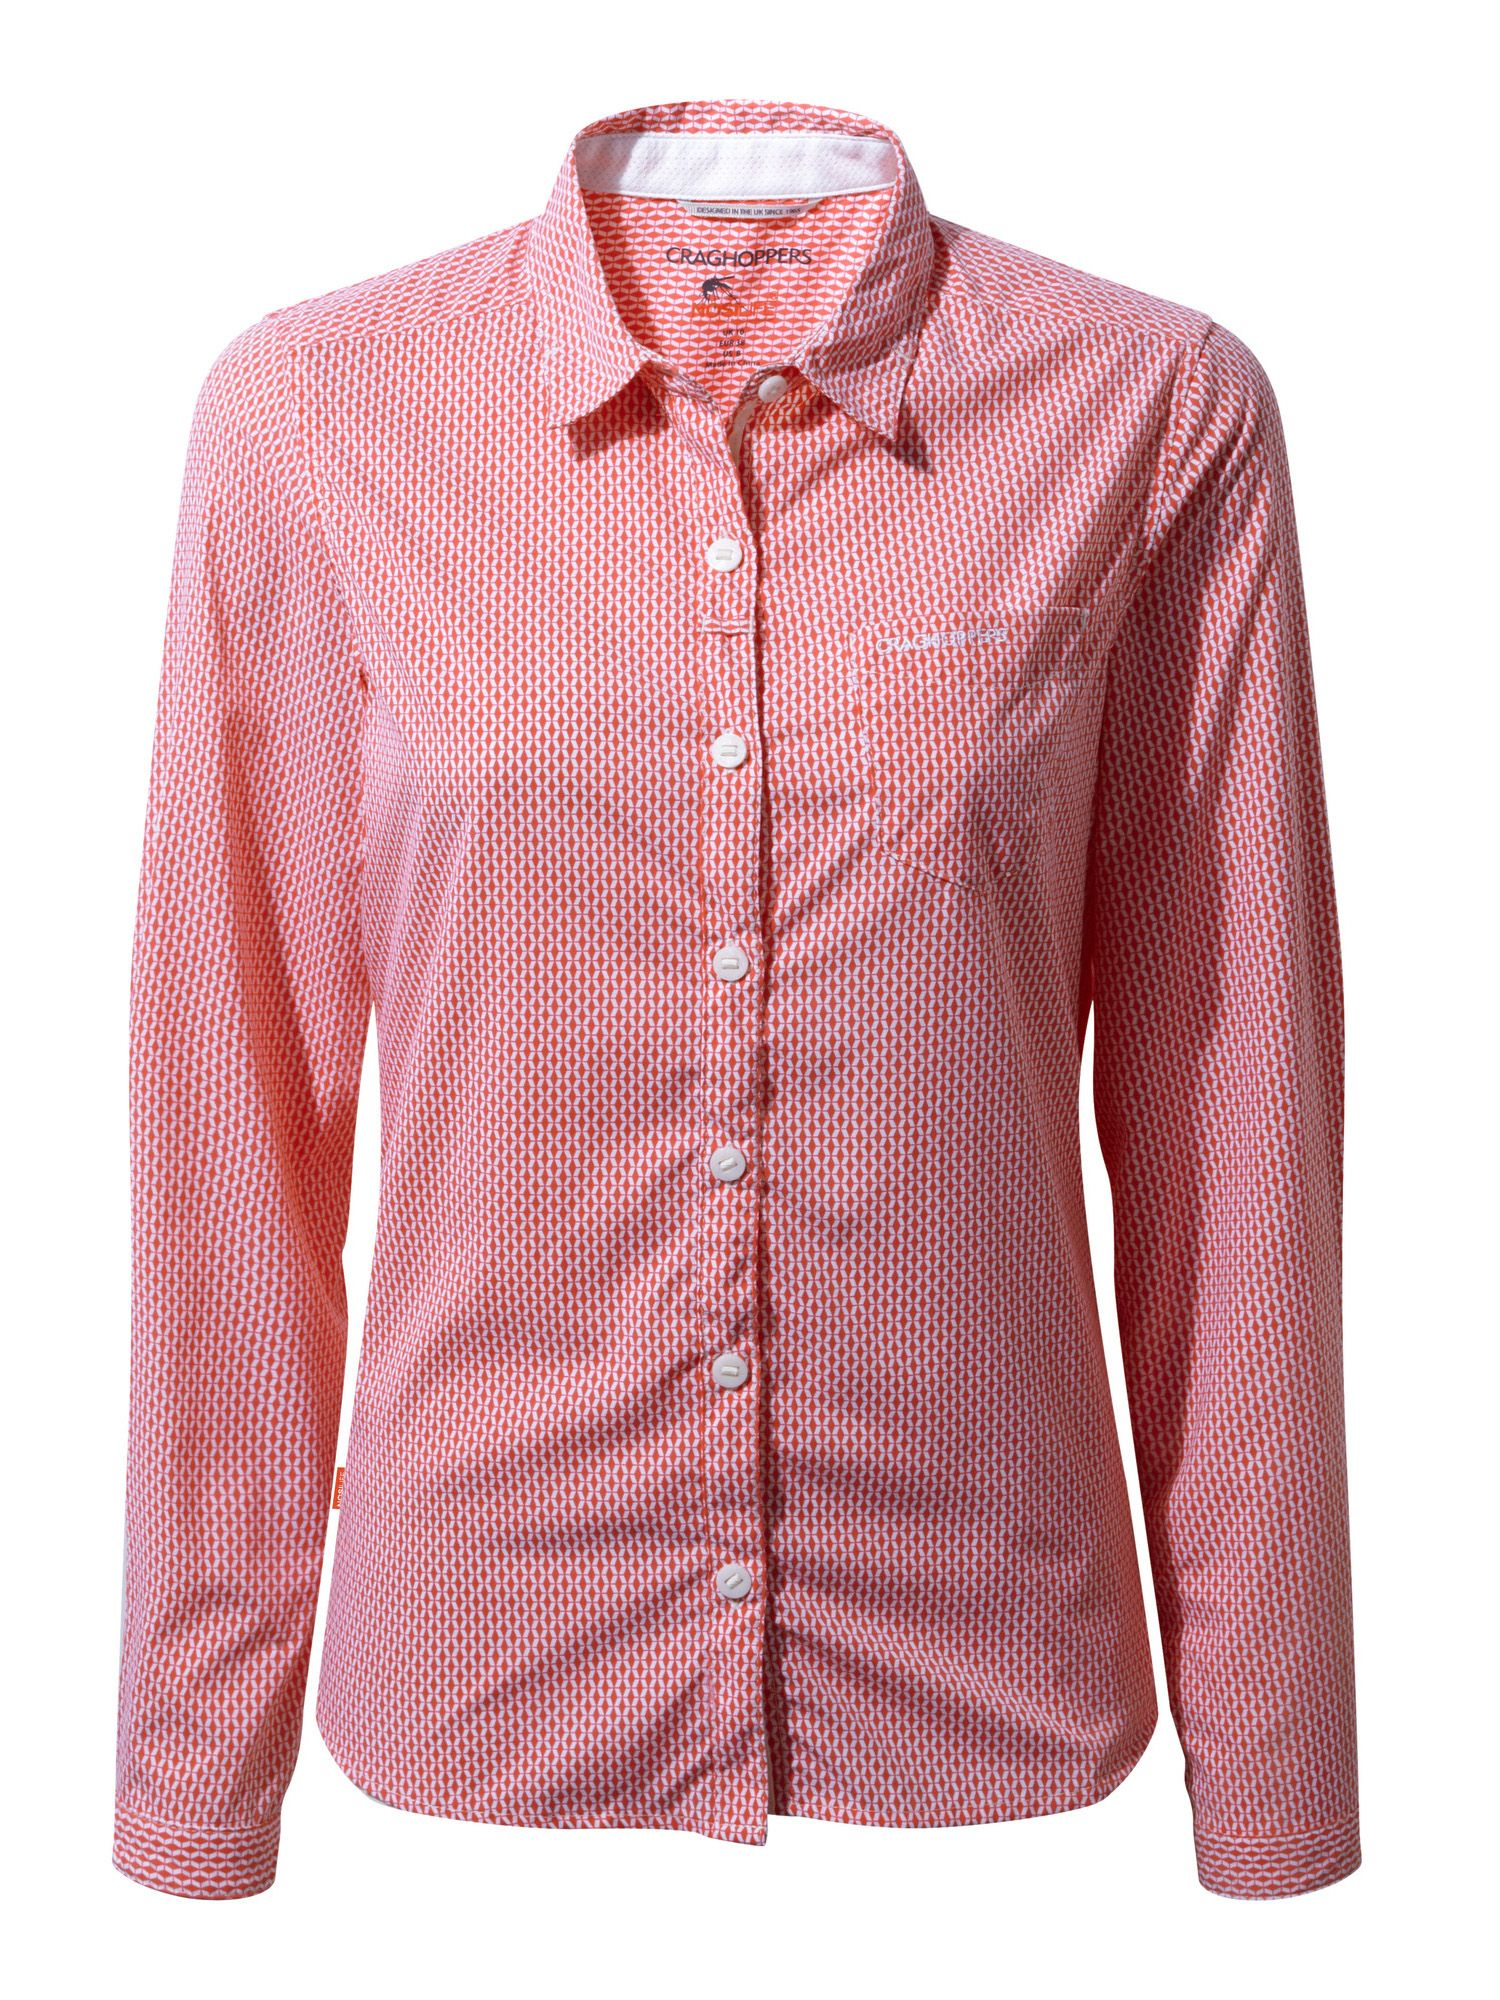 Craghoppers NosiLife Shona Long Sleeved Shirt, Pink